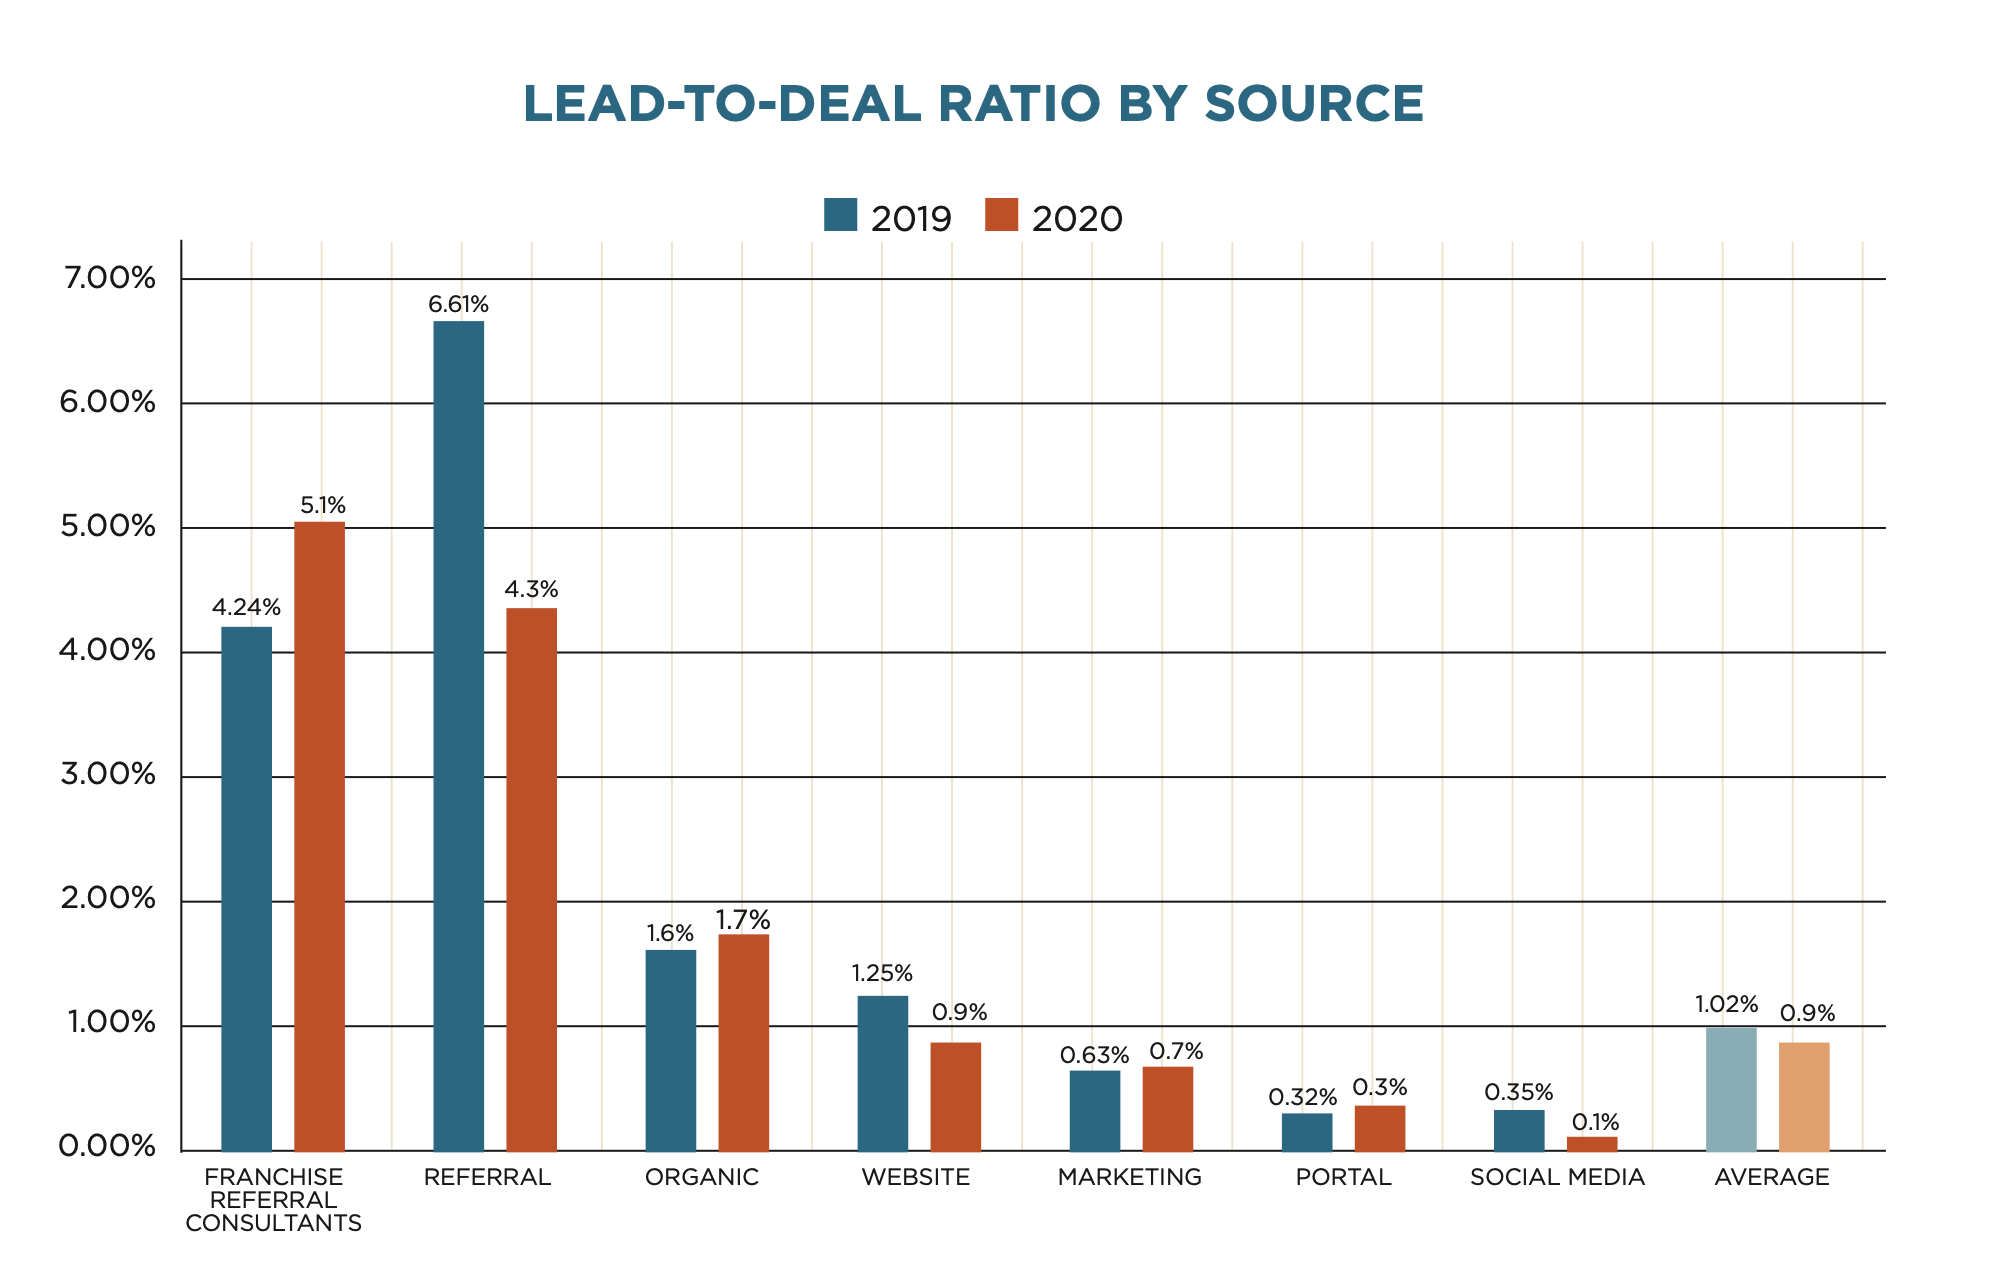 Franchise Lead to Deal Ratio by Source